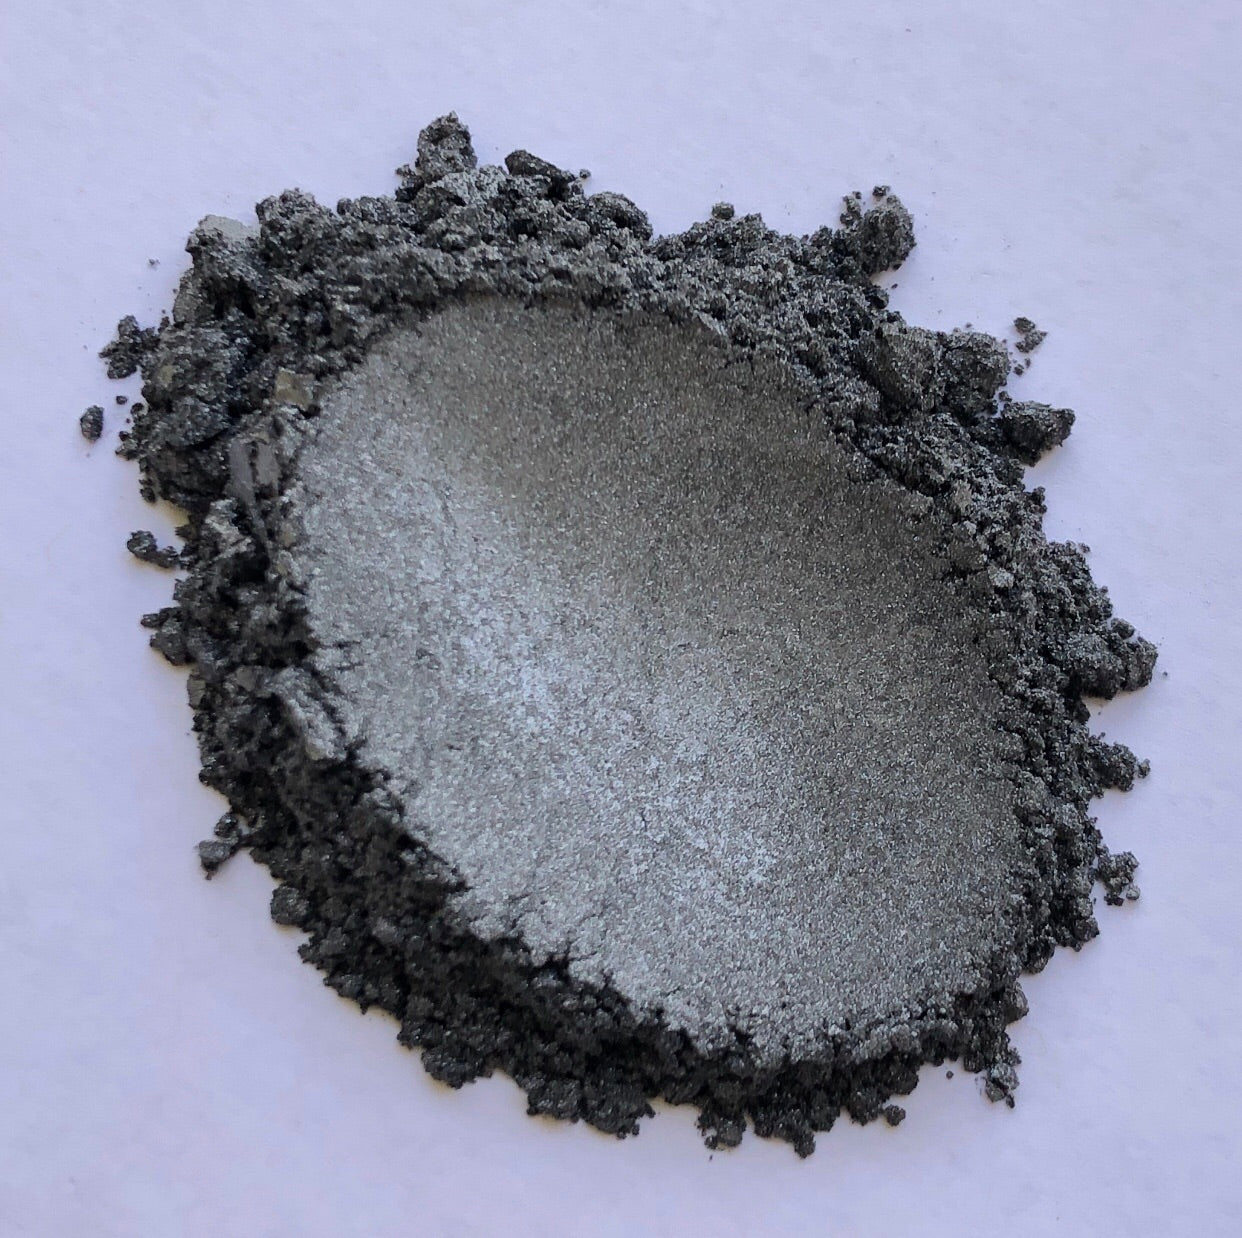 """ALUMINIUM"" 42g/1.5oz - Black Diamond Pigments"